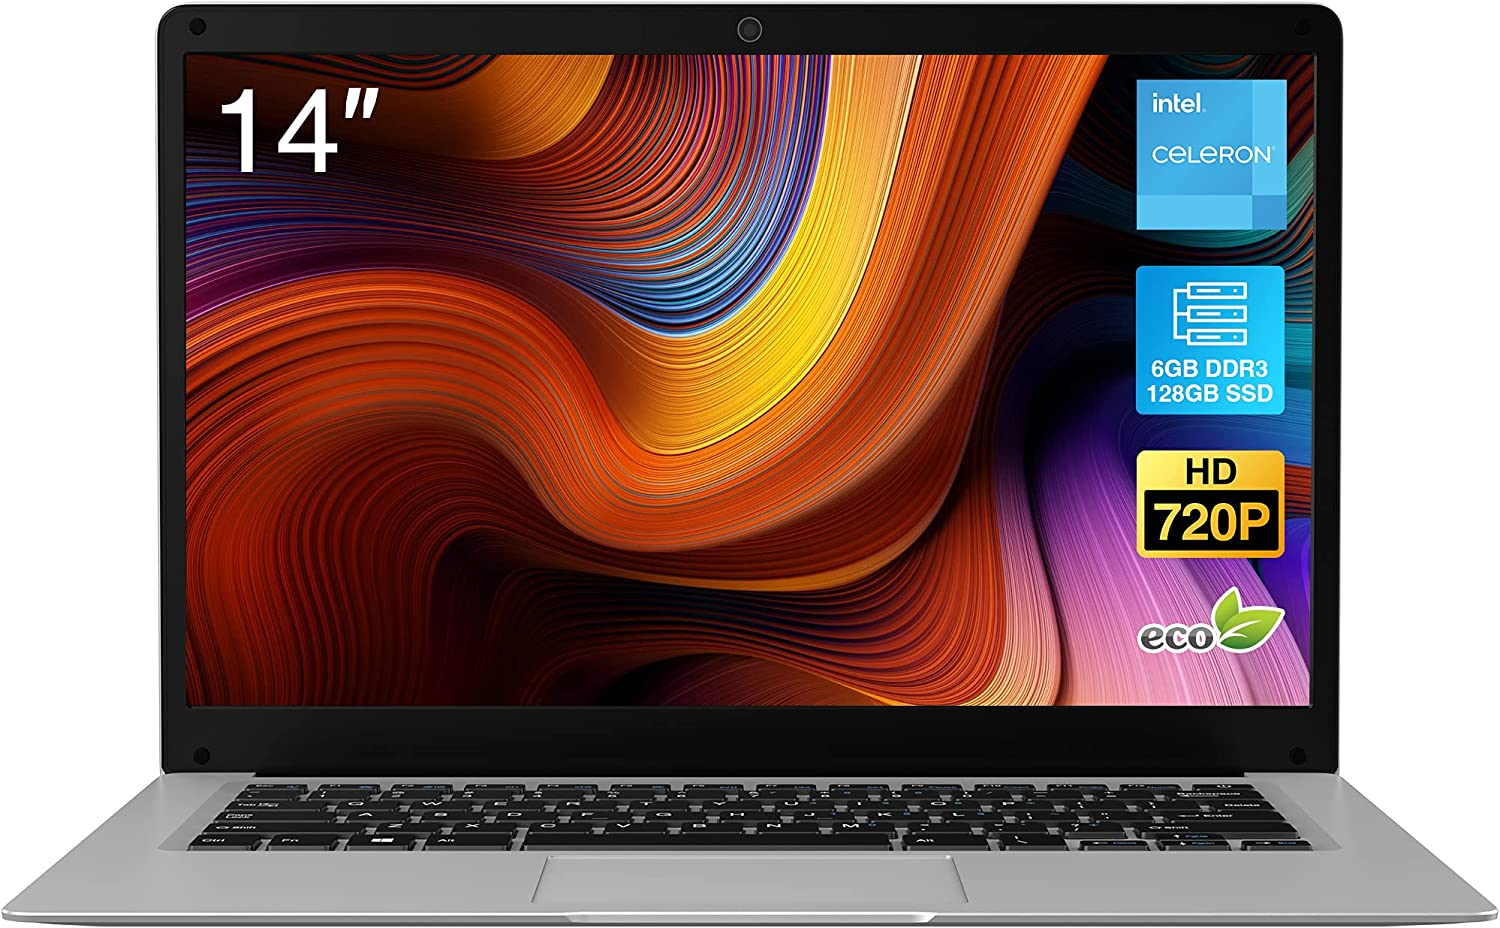 2021 New BiTECOOL CosBook Windows 10 Laptop, 14 inches HD Clear Display, Intel Celeron J4005 Dual Core(up to 2.7GHz), 6GB LPDDR3, 128GB SSD, Expandable up to 1TB, WiFi, BT4.0, 4K@60Hz Support